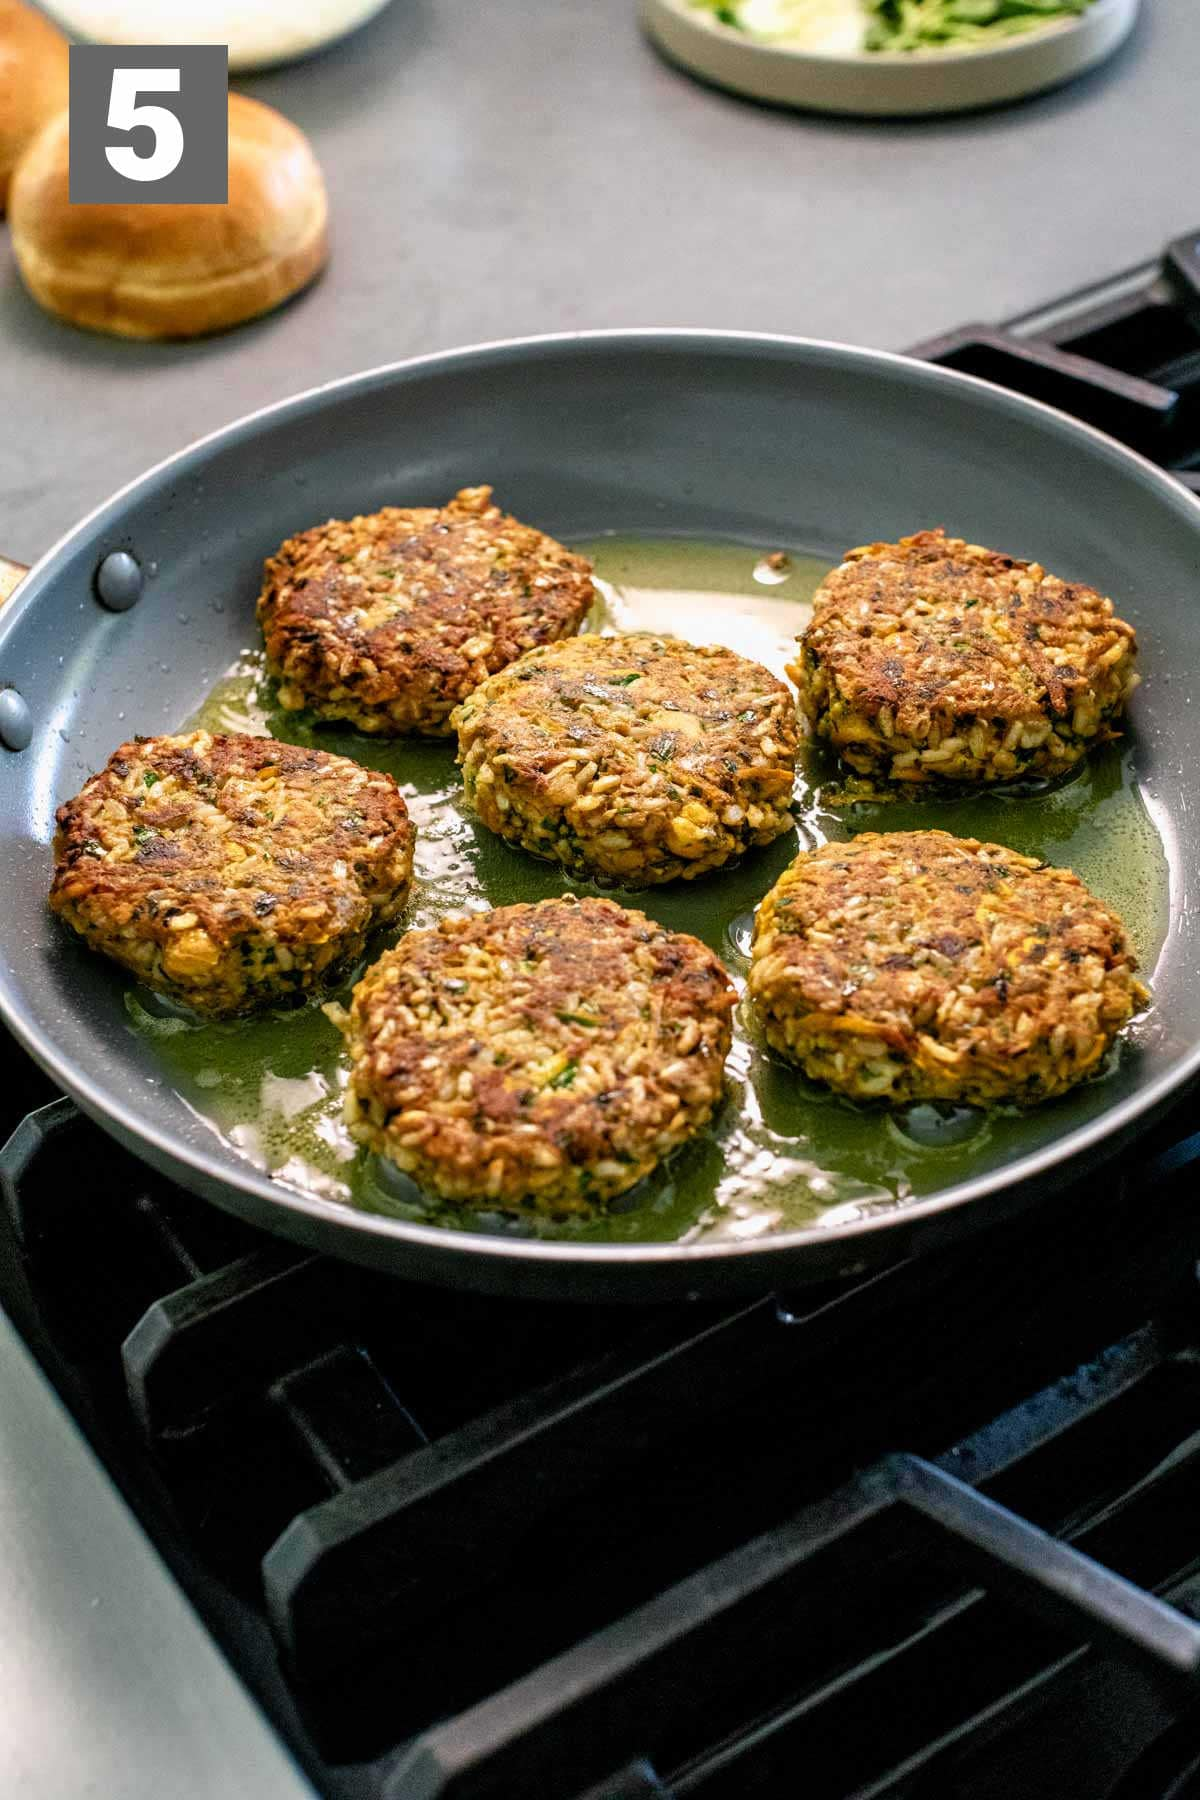 cooking the burgers in the skillet